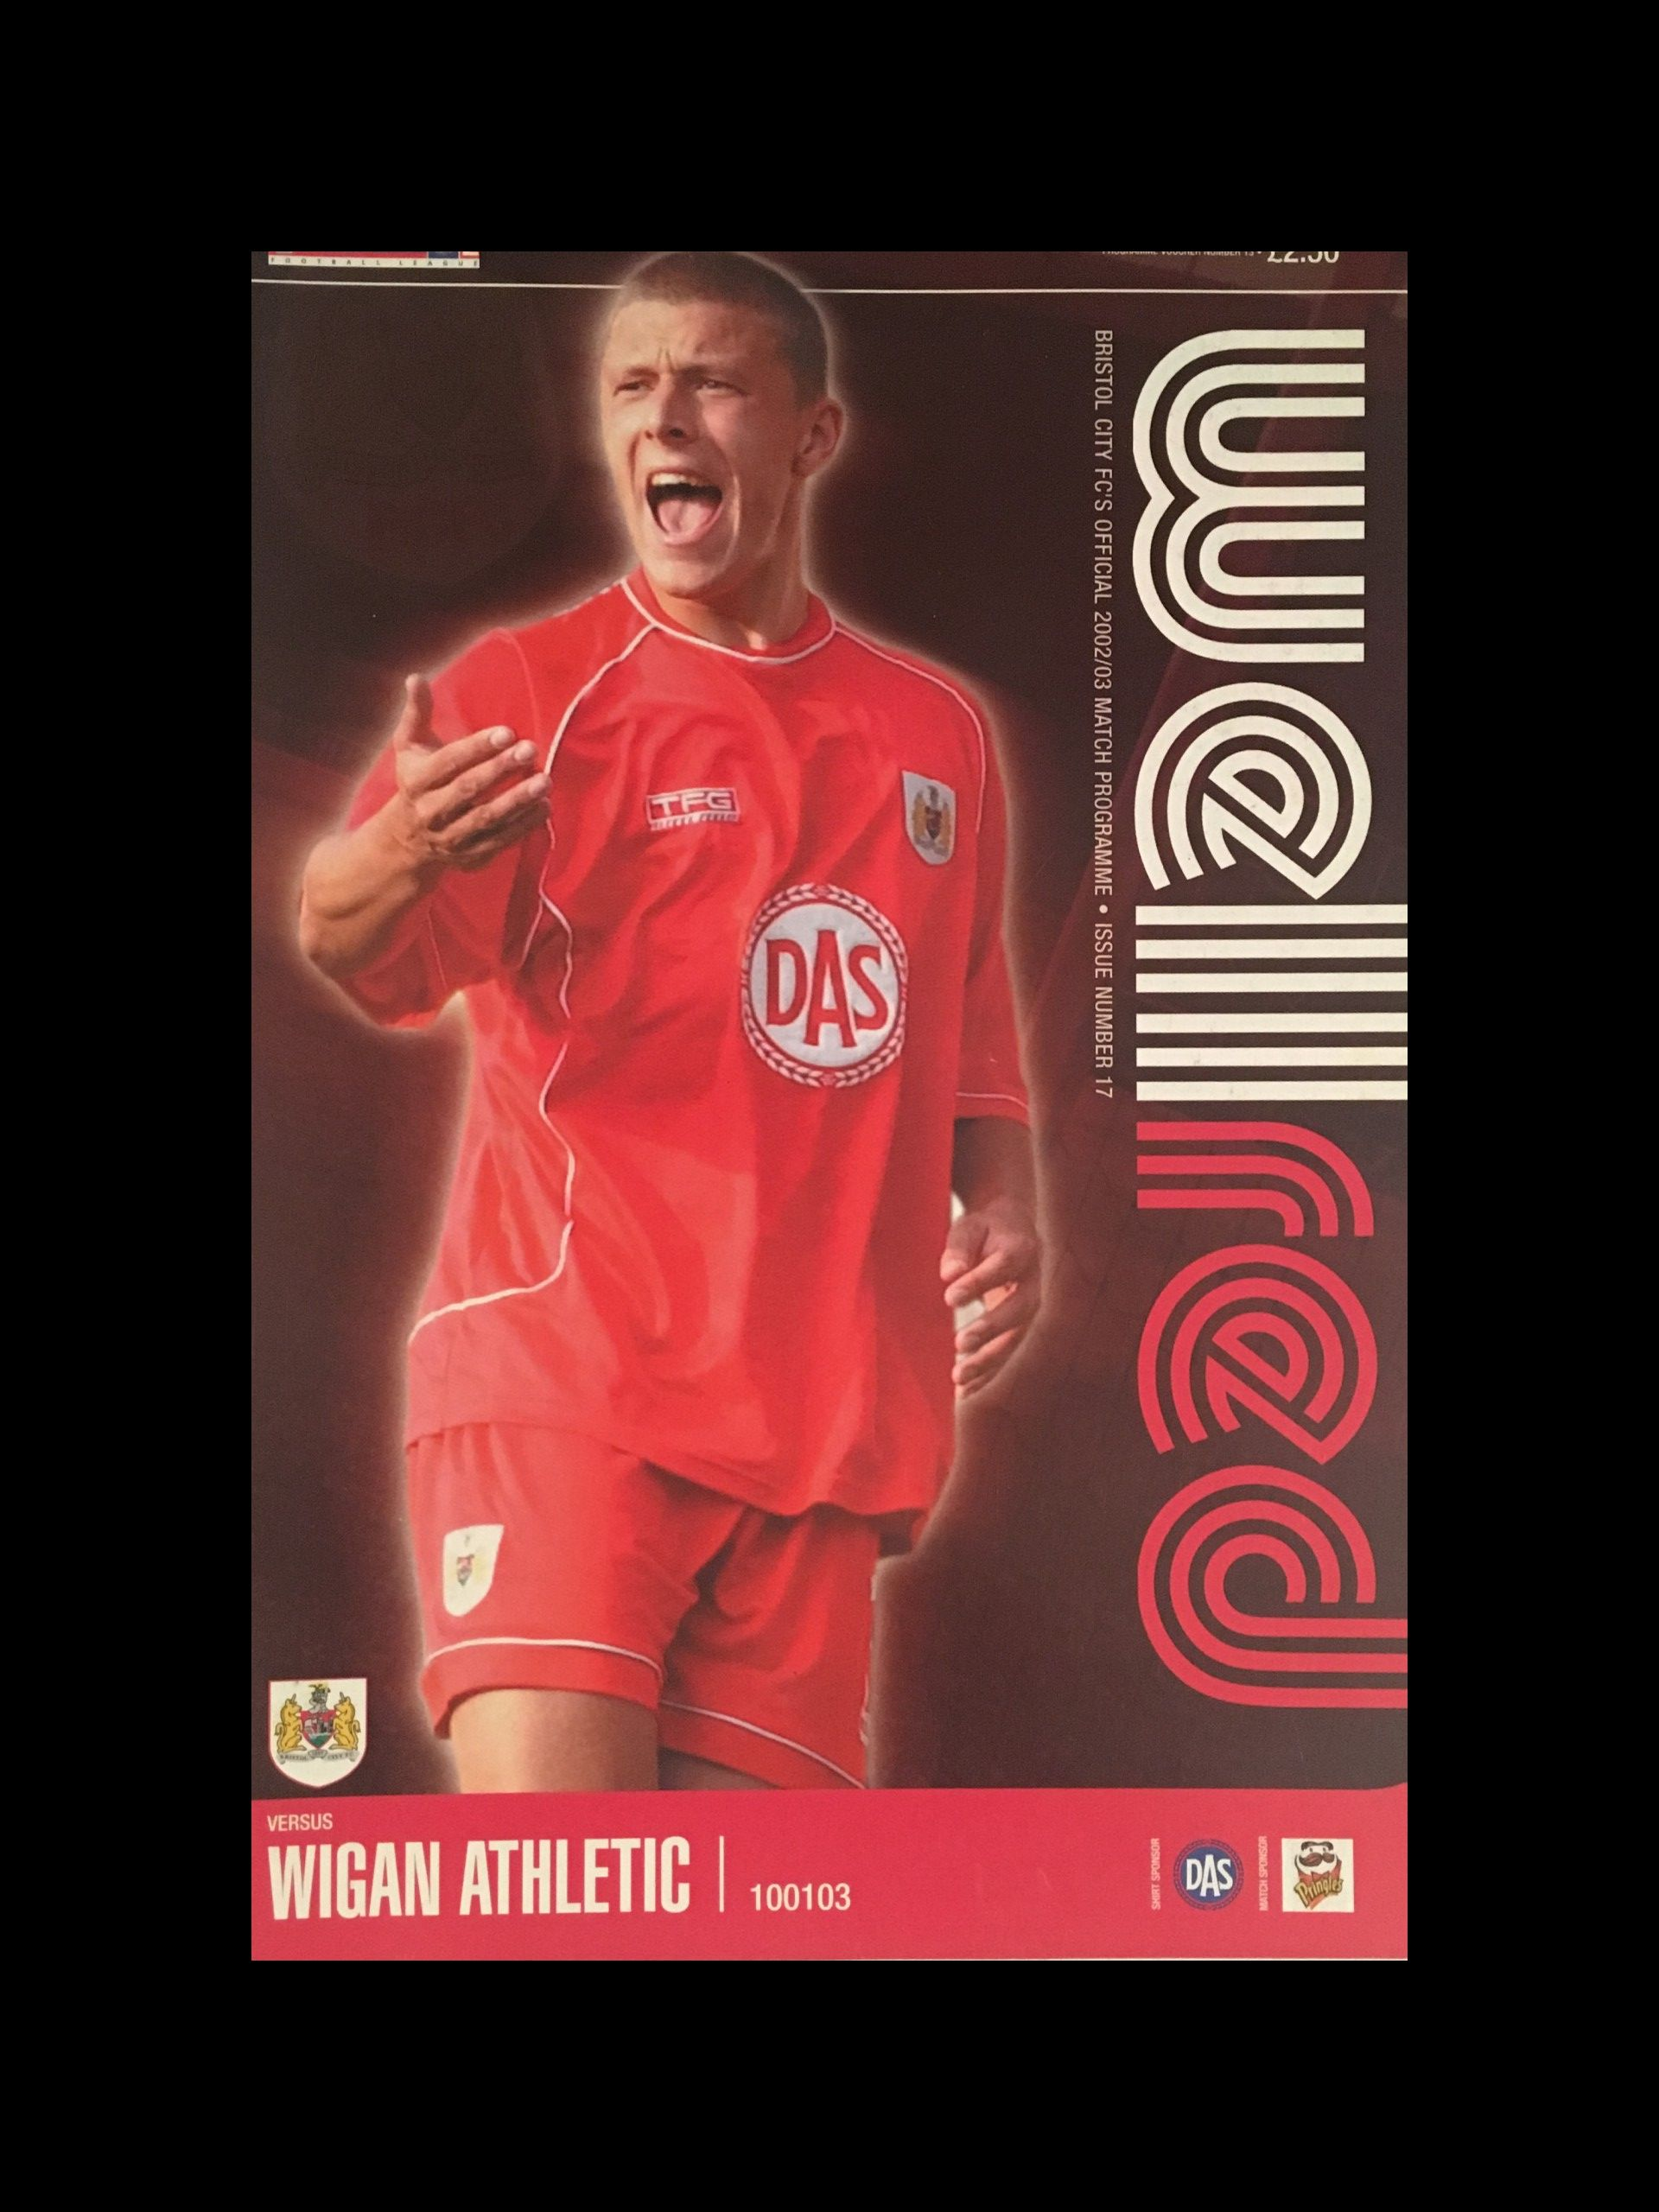 Bristol City v Wigan Athletic 10-01-2003 Programme